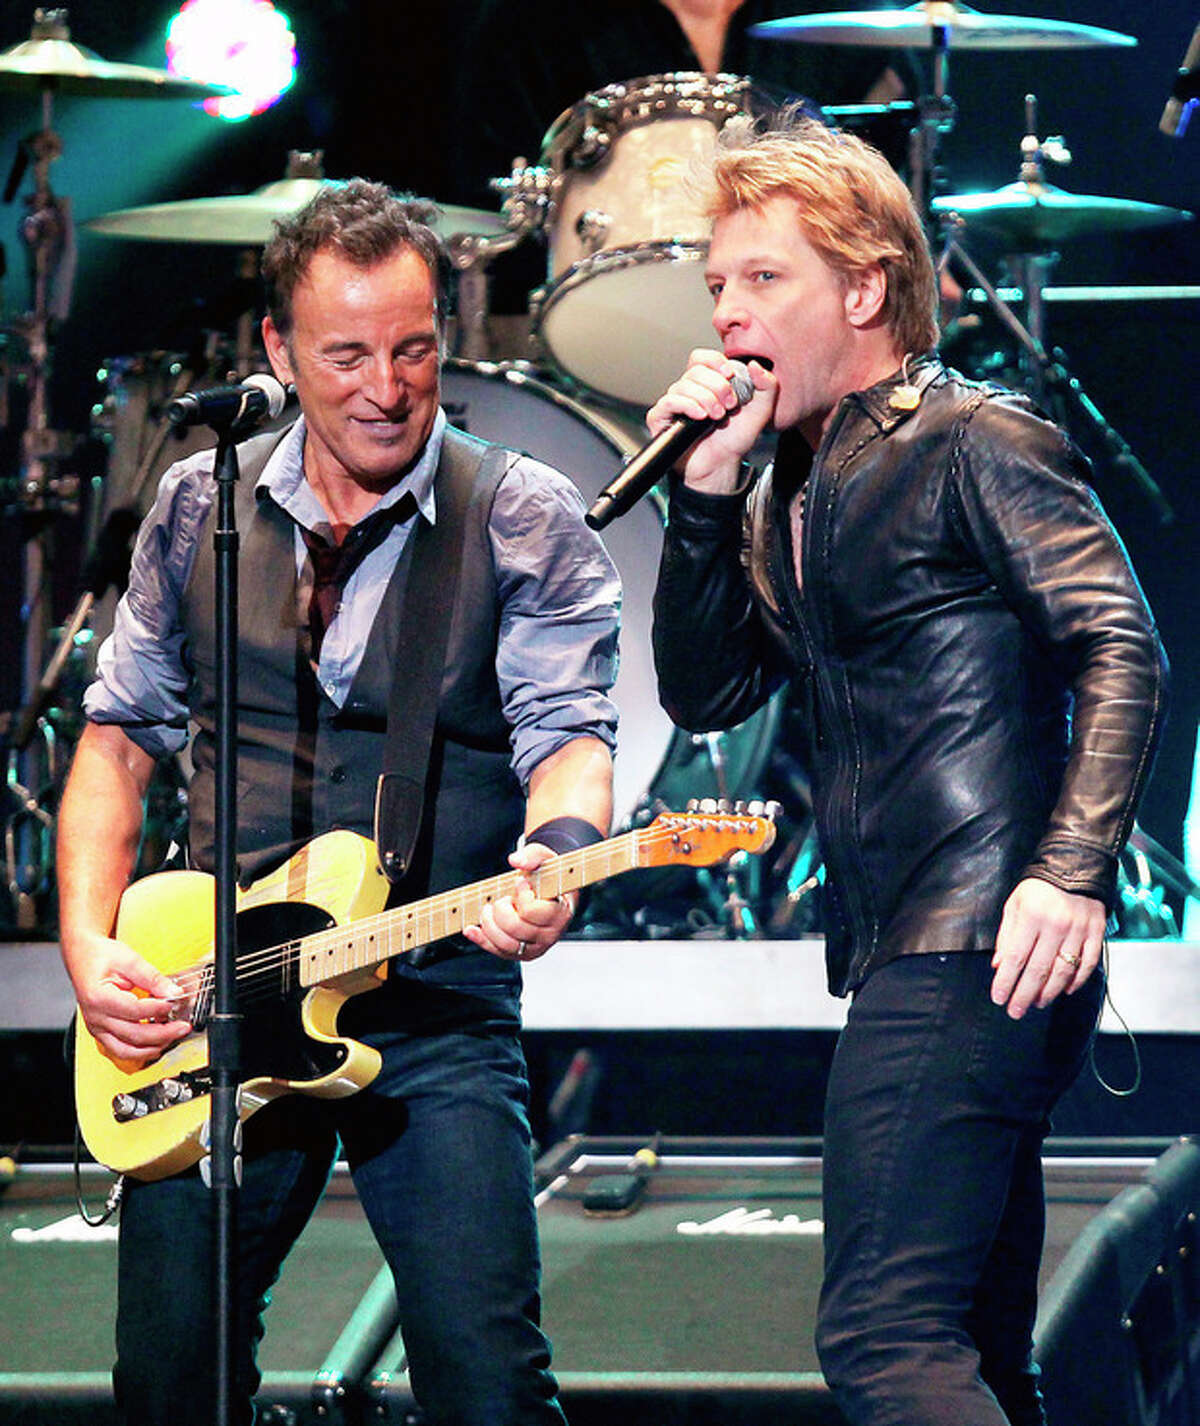 AP Photo/Starpix, Dave Allocca This image released by Starpix shows Bruce Springsteen, left, and Jon Bon Jovi performing at the 12-12-12 The Concert for Sandy Relief at Madison Square Garden in New York on Wednesday, Dec. 12. Proceeds from the show will be distributed through the Robin Hood Foundation.